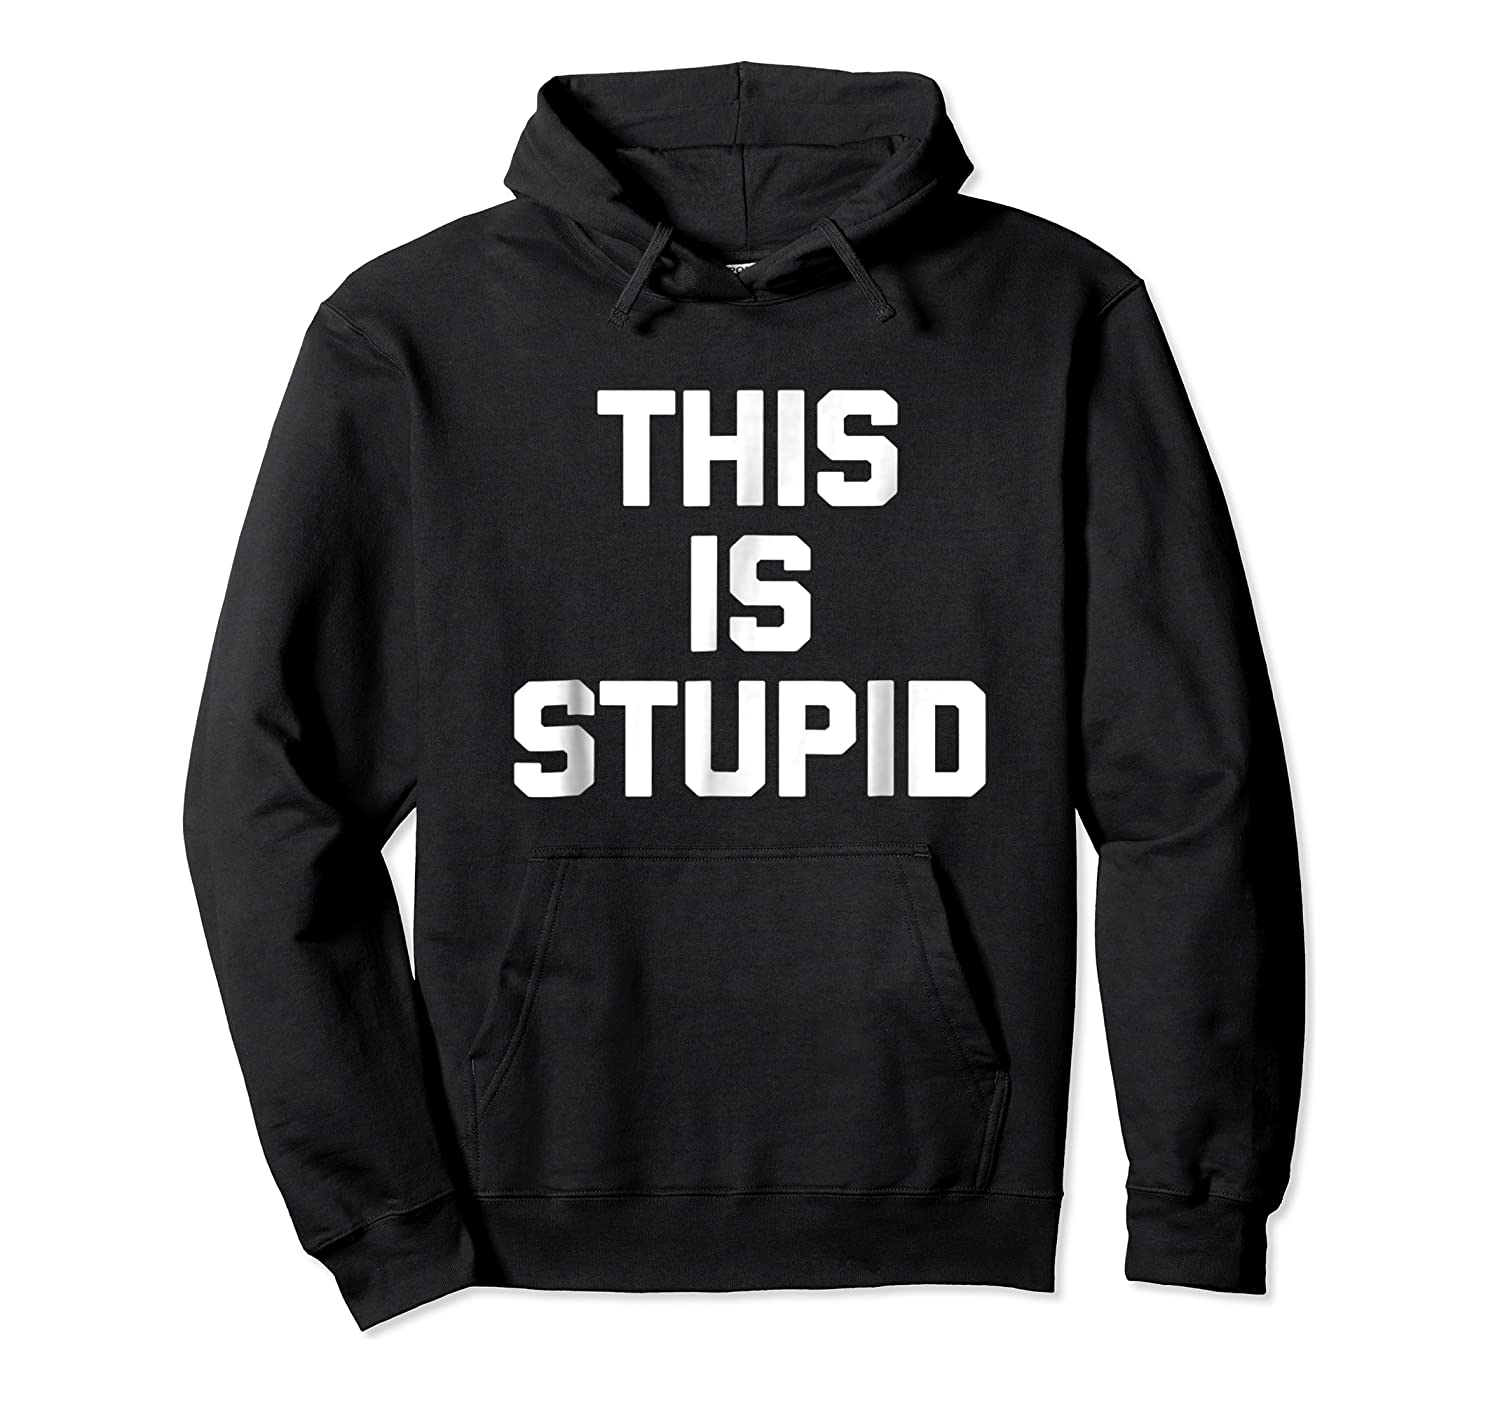 This Is Stupid Funny Saying Sarcastic Novelty Humor Shirts Unisex Pullover Hoodie